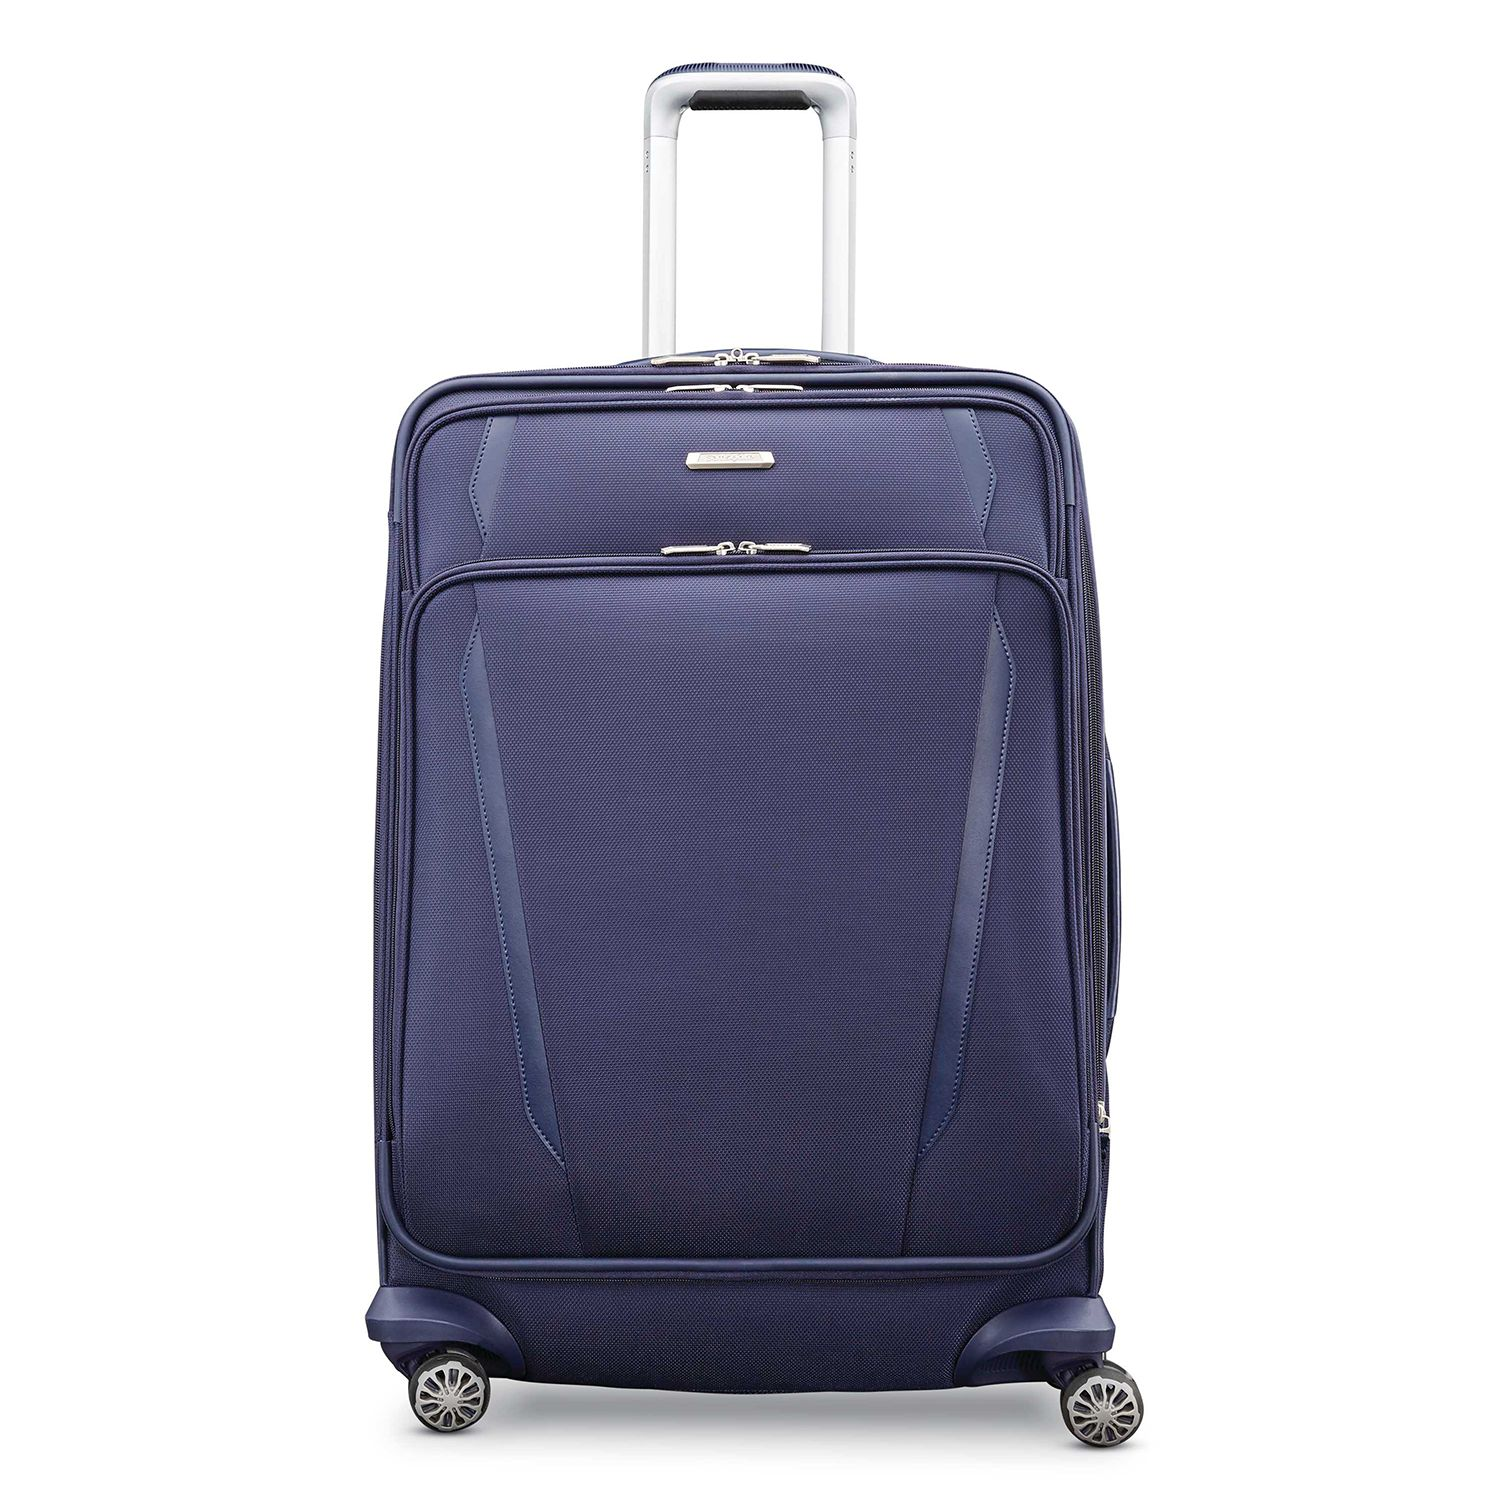 e5a6d2c23ad7 Luggage   Suitcases